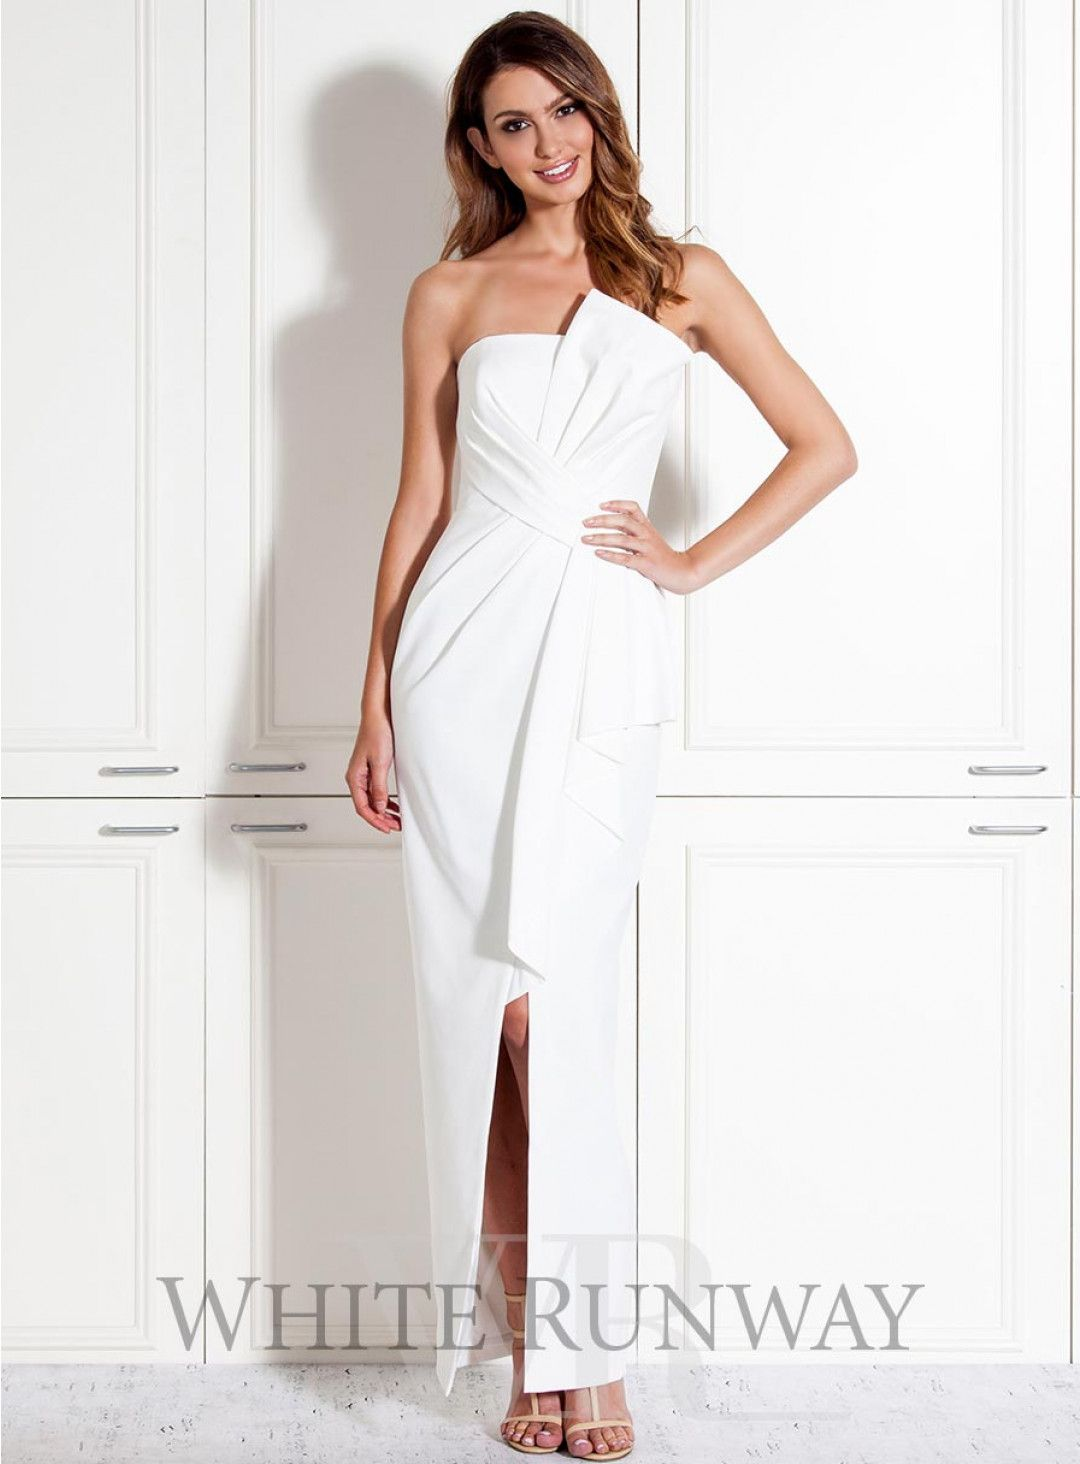 47fb37f31a Stellina Dress. A gorgeous full length dress by Australian designer Samantha  Rose. A strapless style featuring 3D ruffle on the neckline and waist.